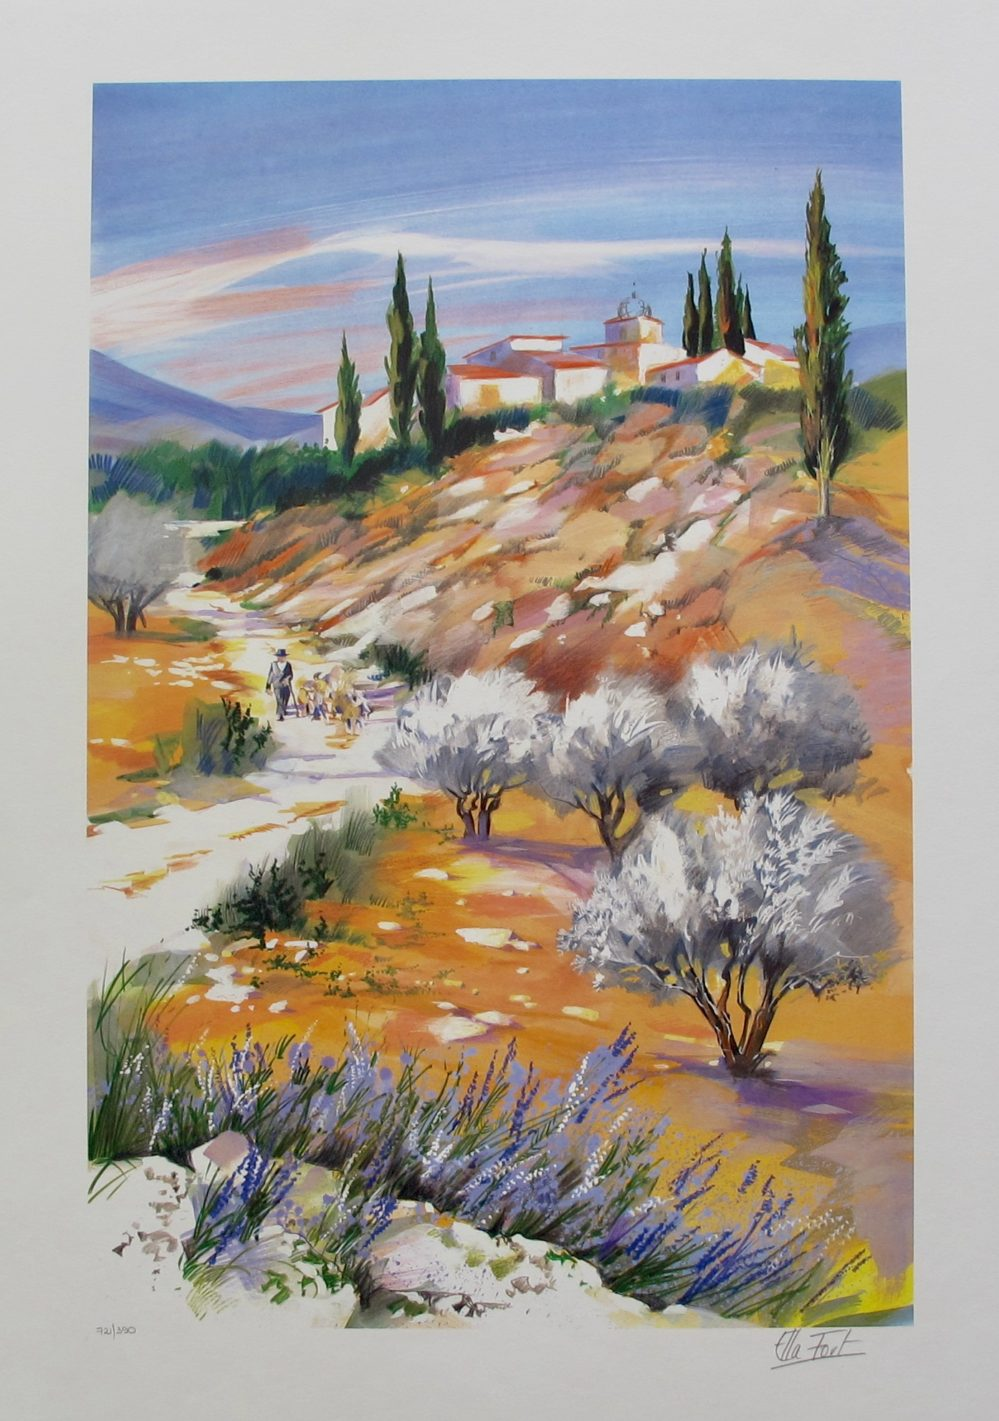 """ELLA FORT """"LANDSCAPE IN PROVENCE VALLEY"""" Hand Signed Limited Edition Lithograph"""